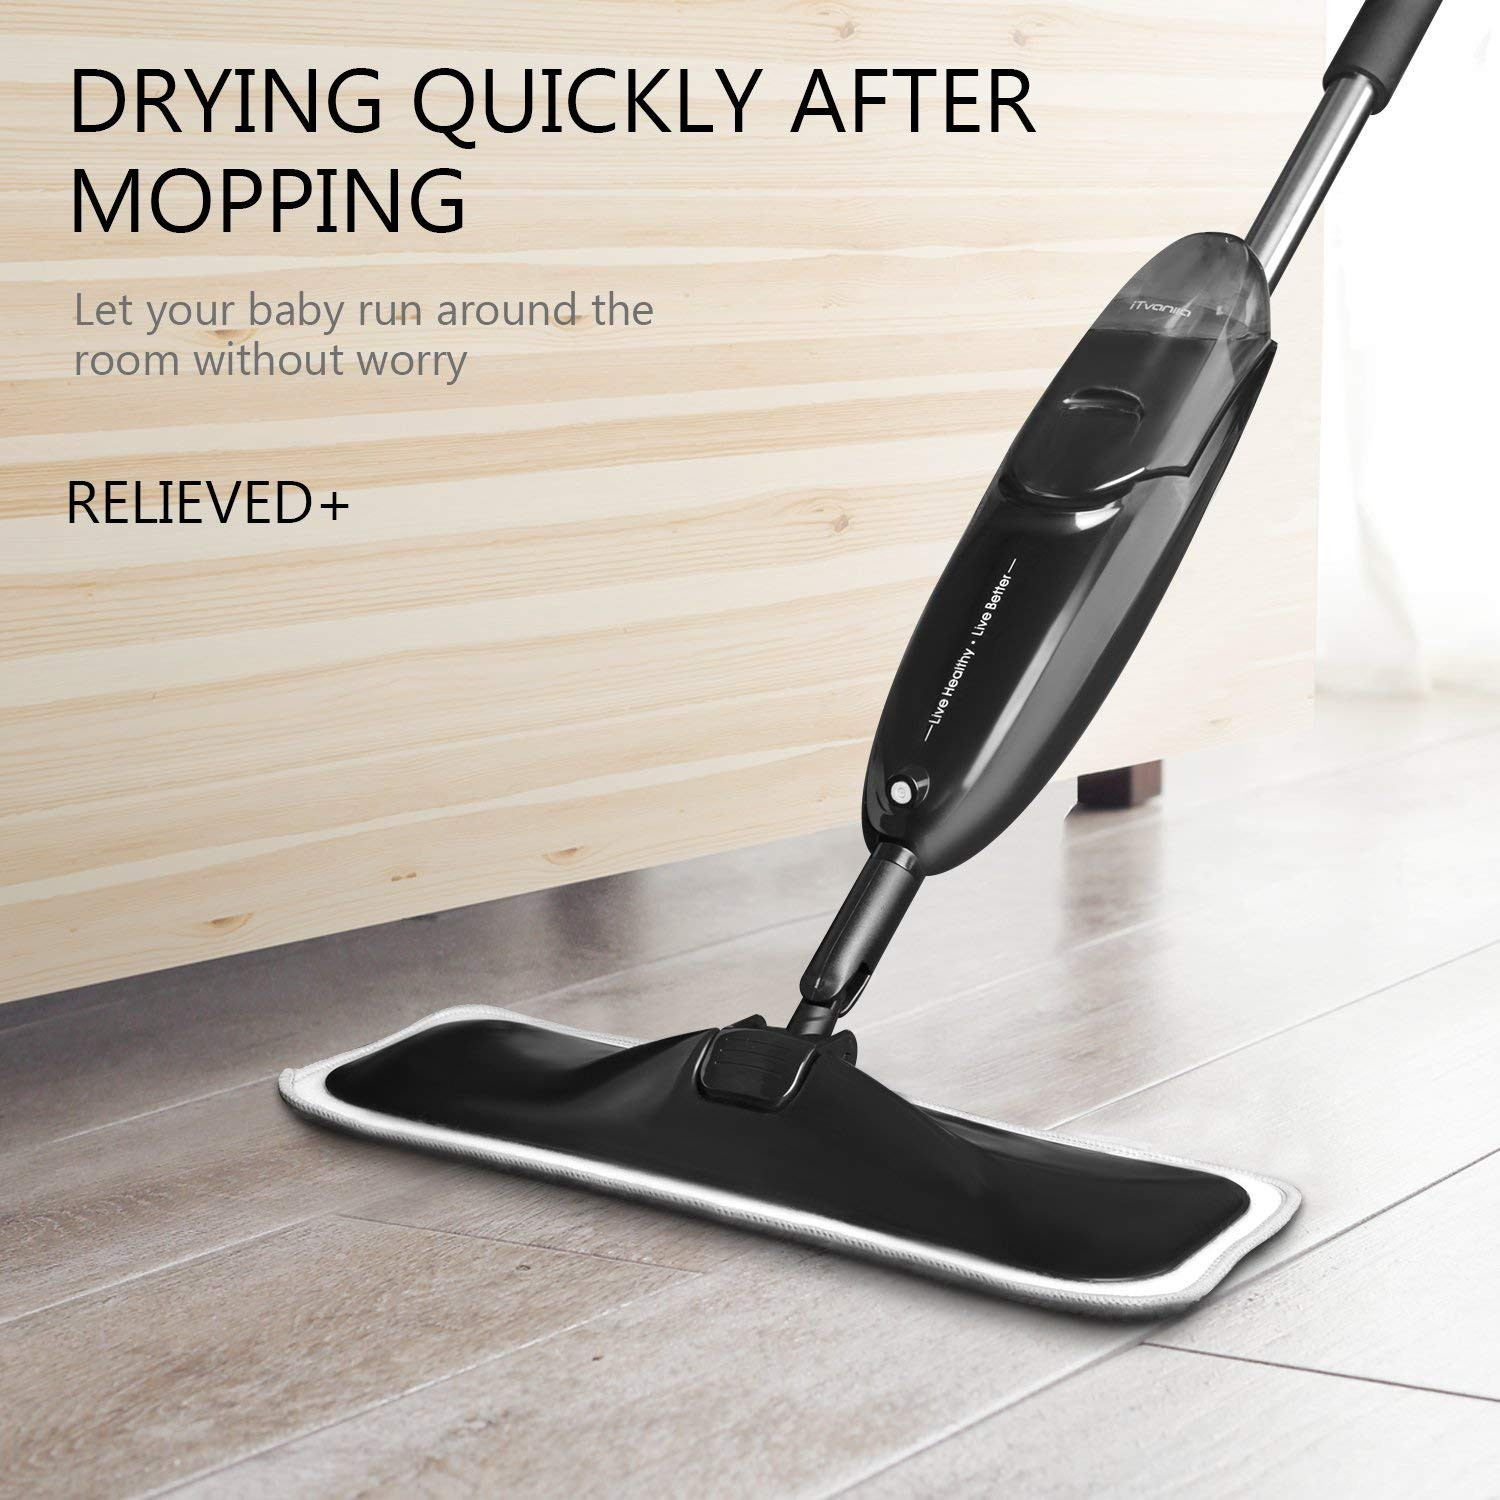 how to start a hardwood flooring business of amazon com itvanila hardwood floor mop spray microfiber mop with 4 throughout amazon com itvanila hardwood floor mop spray microfiber mop with 4 pcs reusable microfibre pads 360 degree rotating easy to clean dry wet mop for